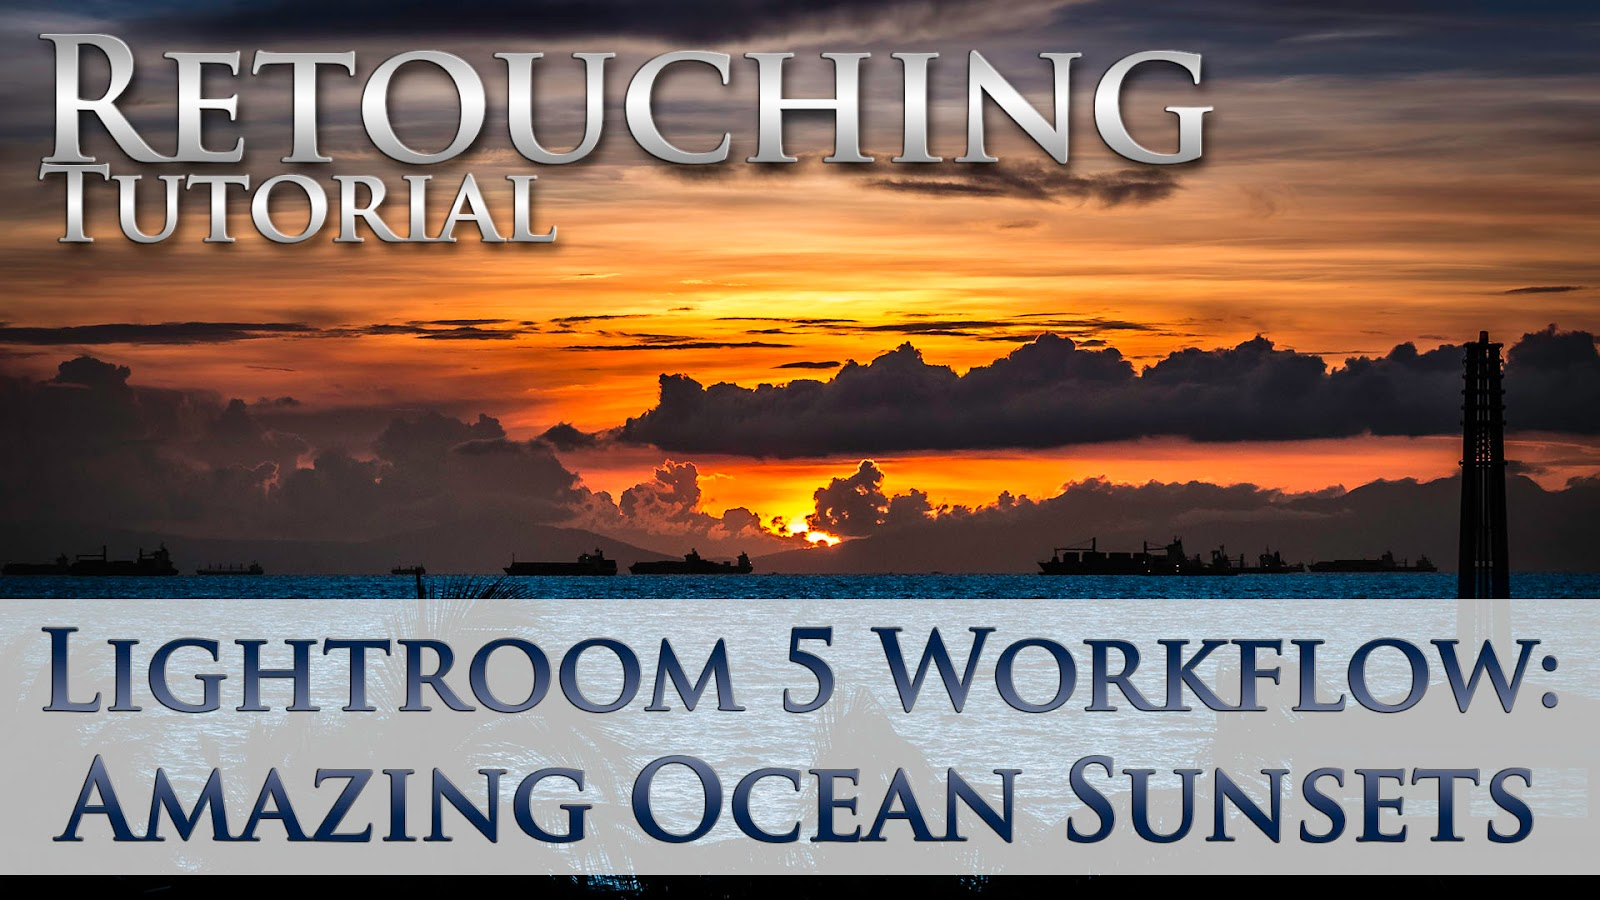 Lightroom 5 Workflow: Amazing Ocean Sunsets, Ships On The Horizon | Retouching Tutorial